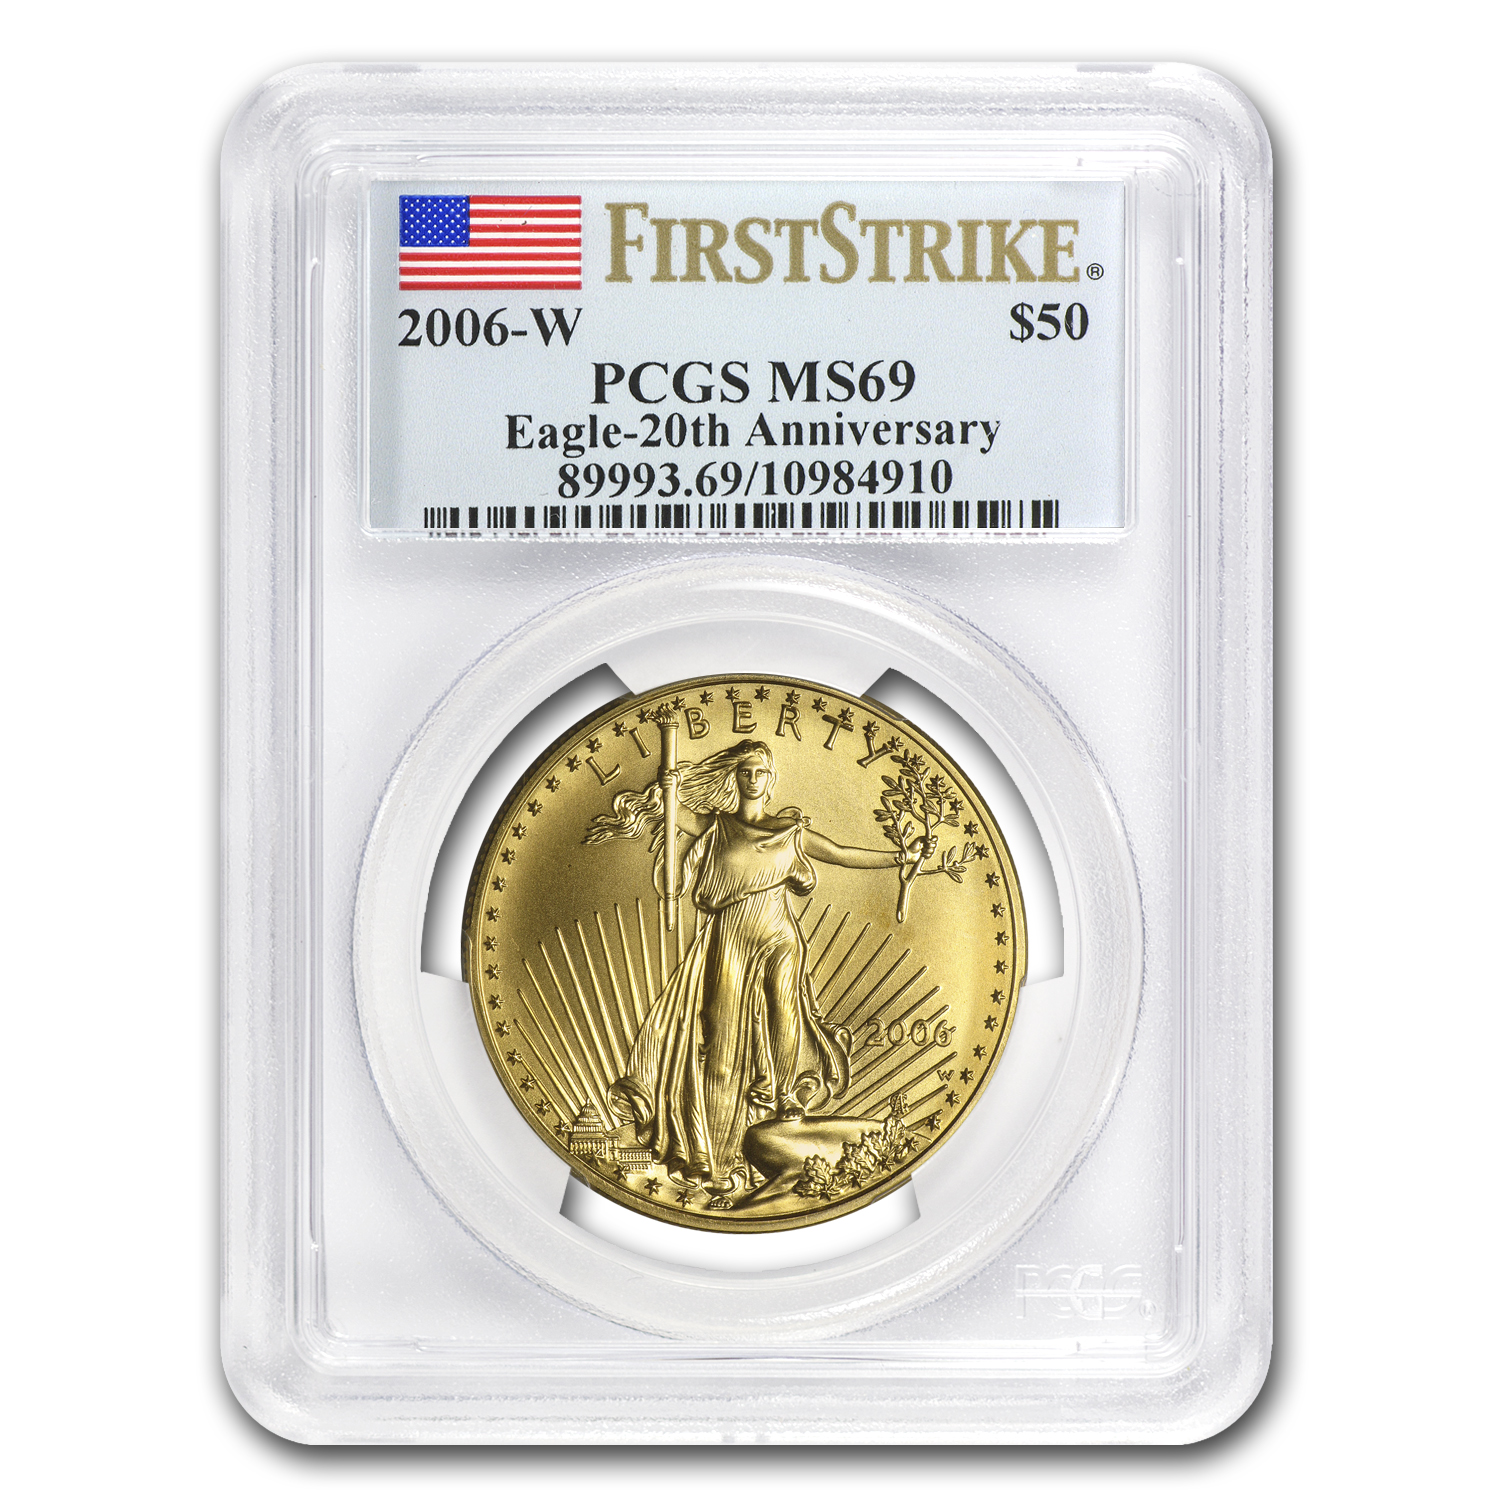 2006-W 1 oz Burnished Gold Eagle MS-69 PCGS (FS, 20th Anniv)